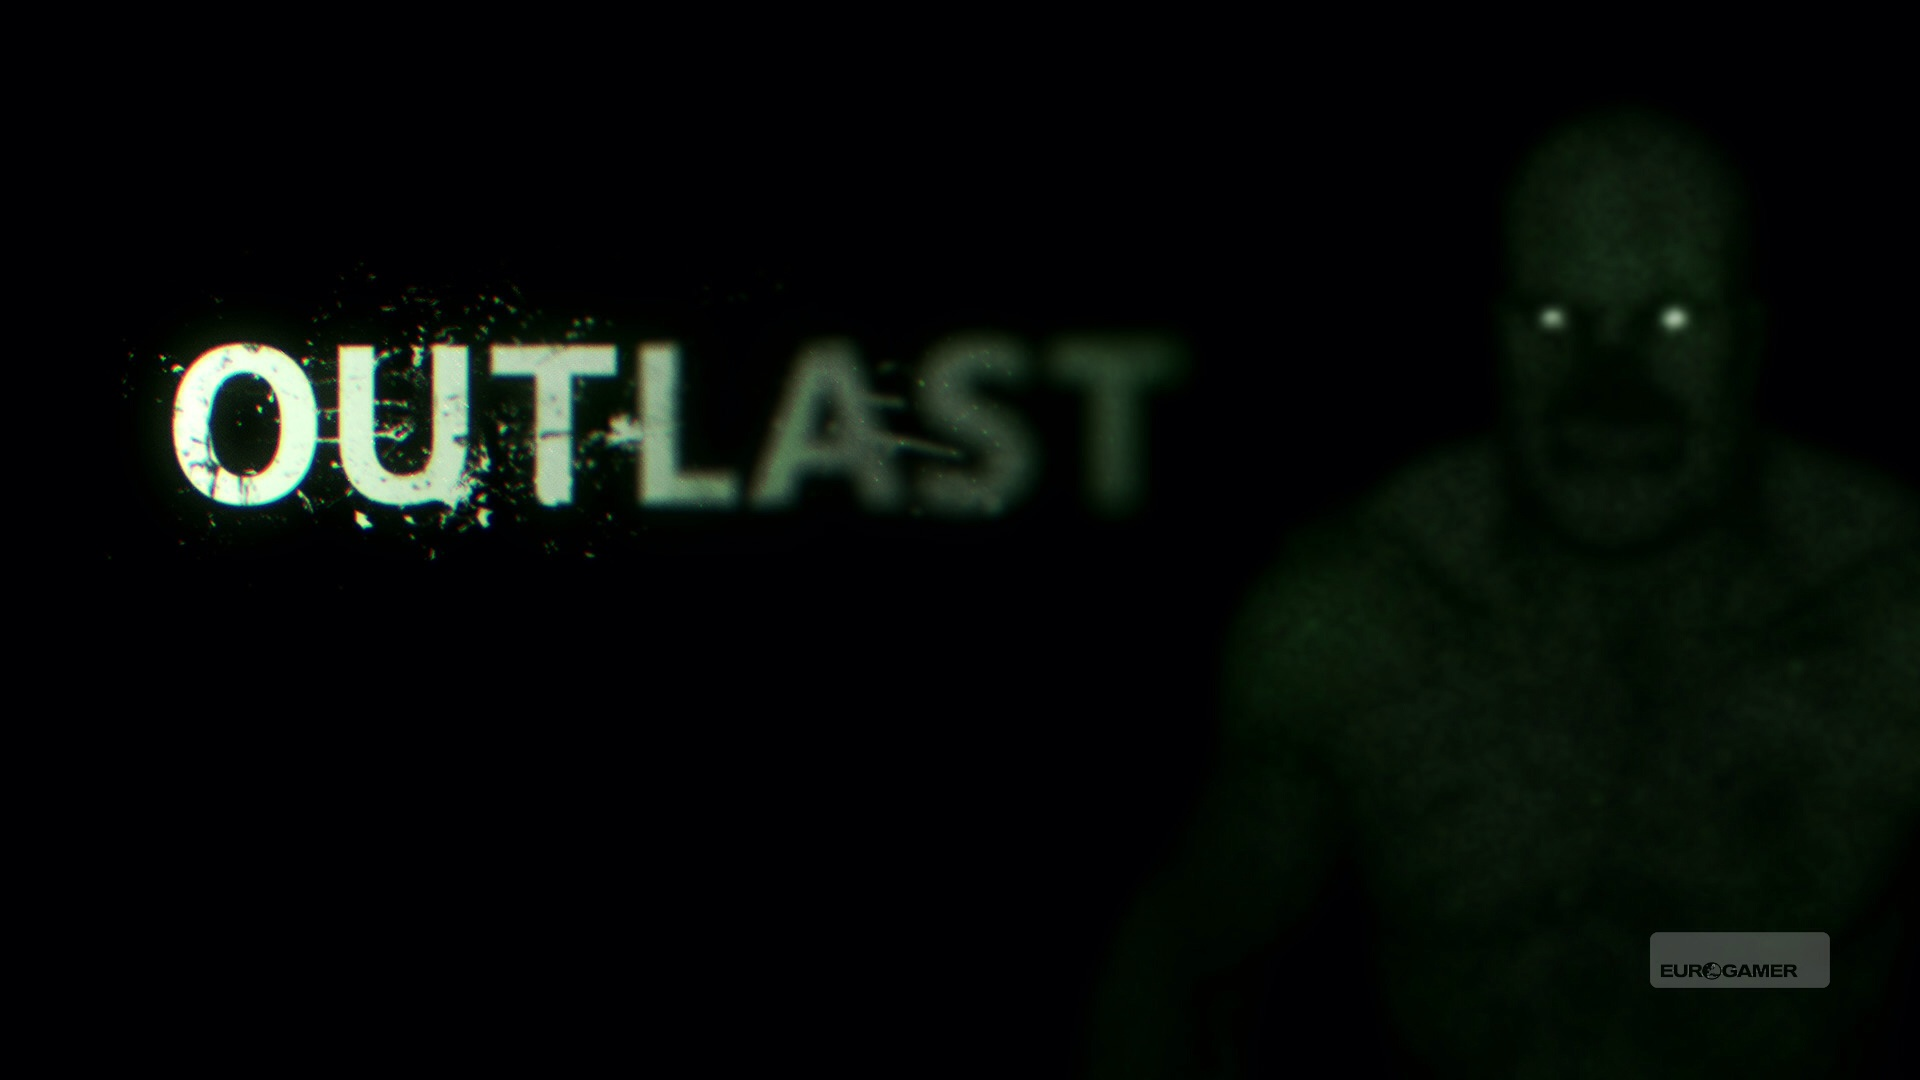 Video Games images Outlast Wallpaper HD wallpaper and background 1920x1080